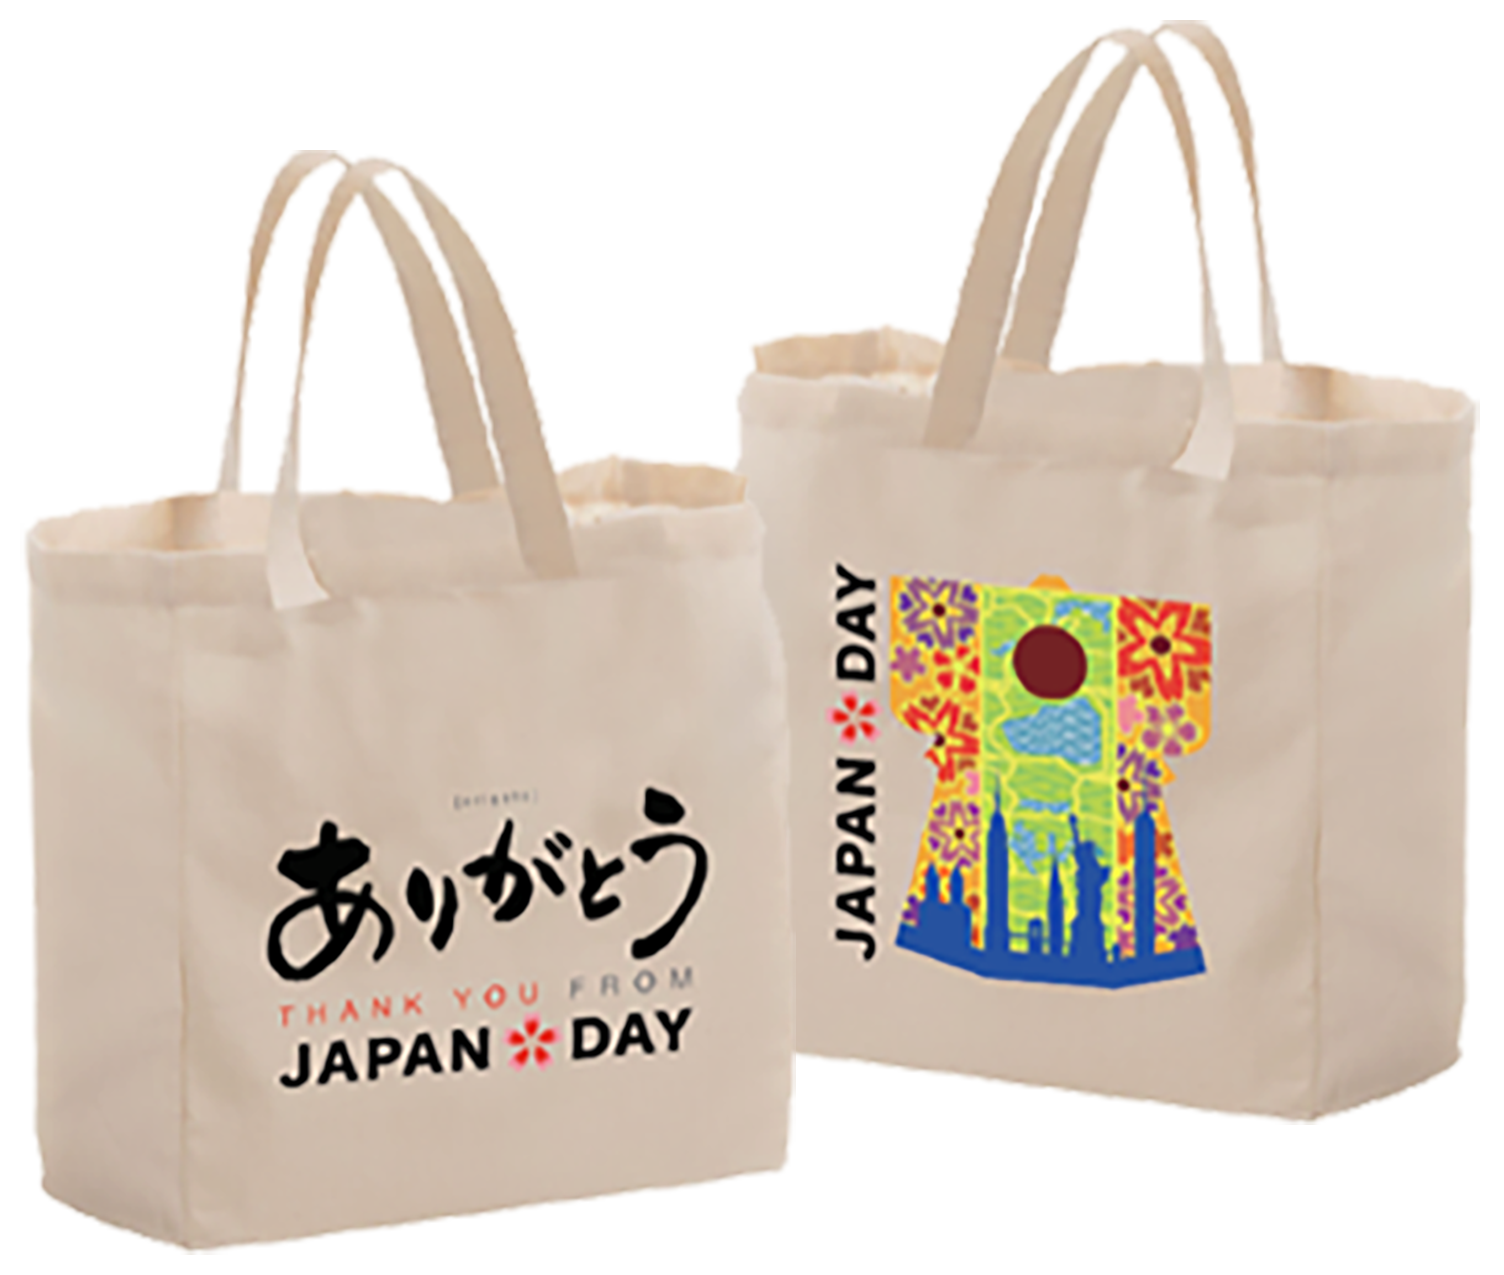 japan day thank you project 2021 tote bag